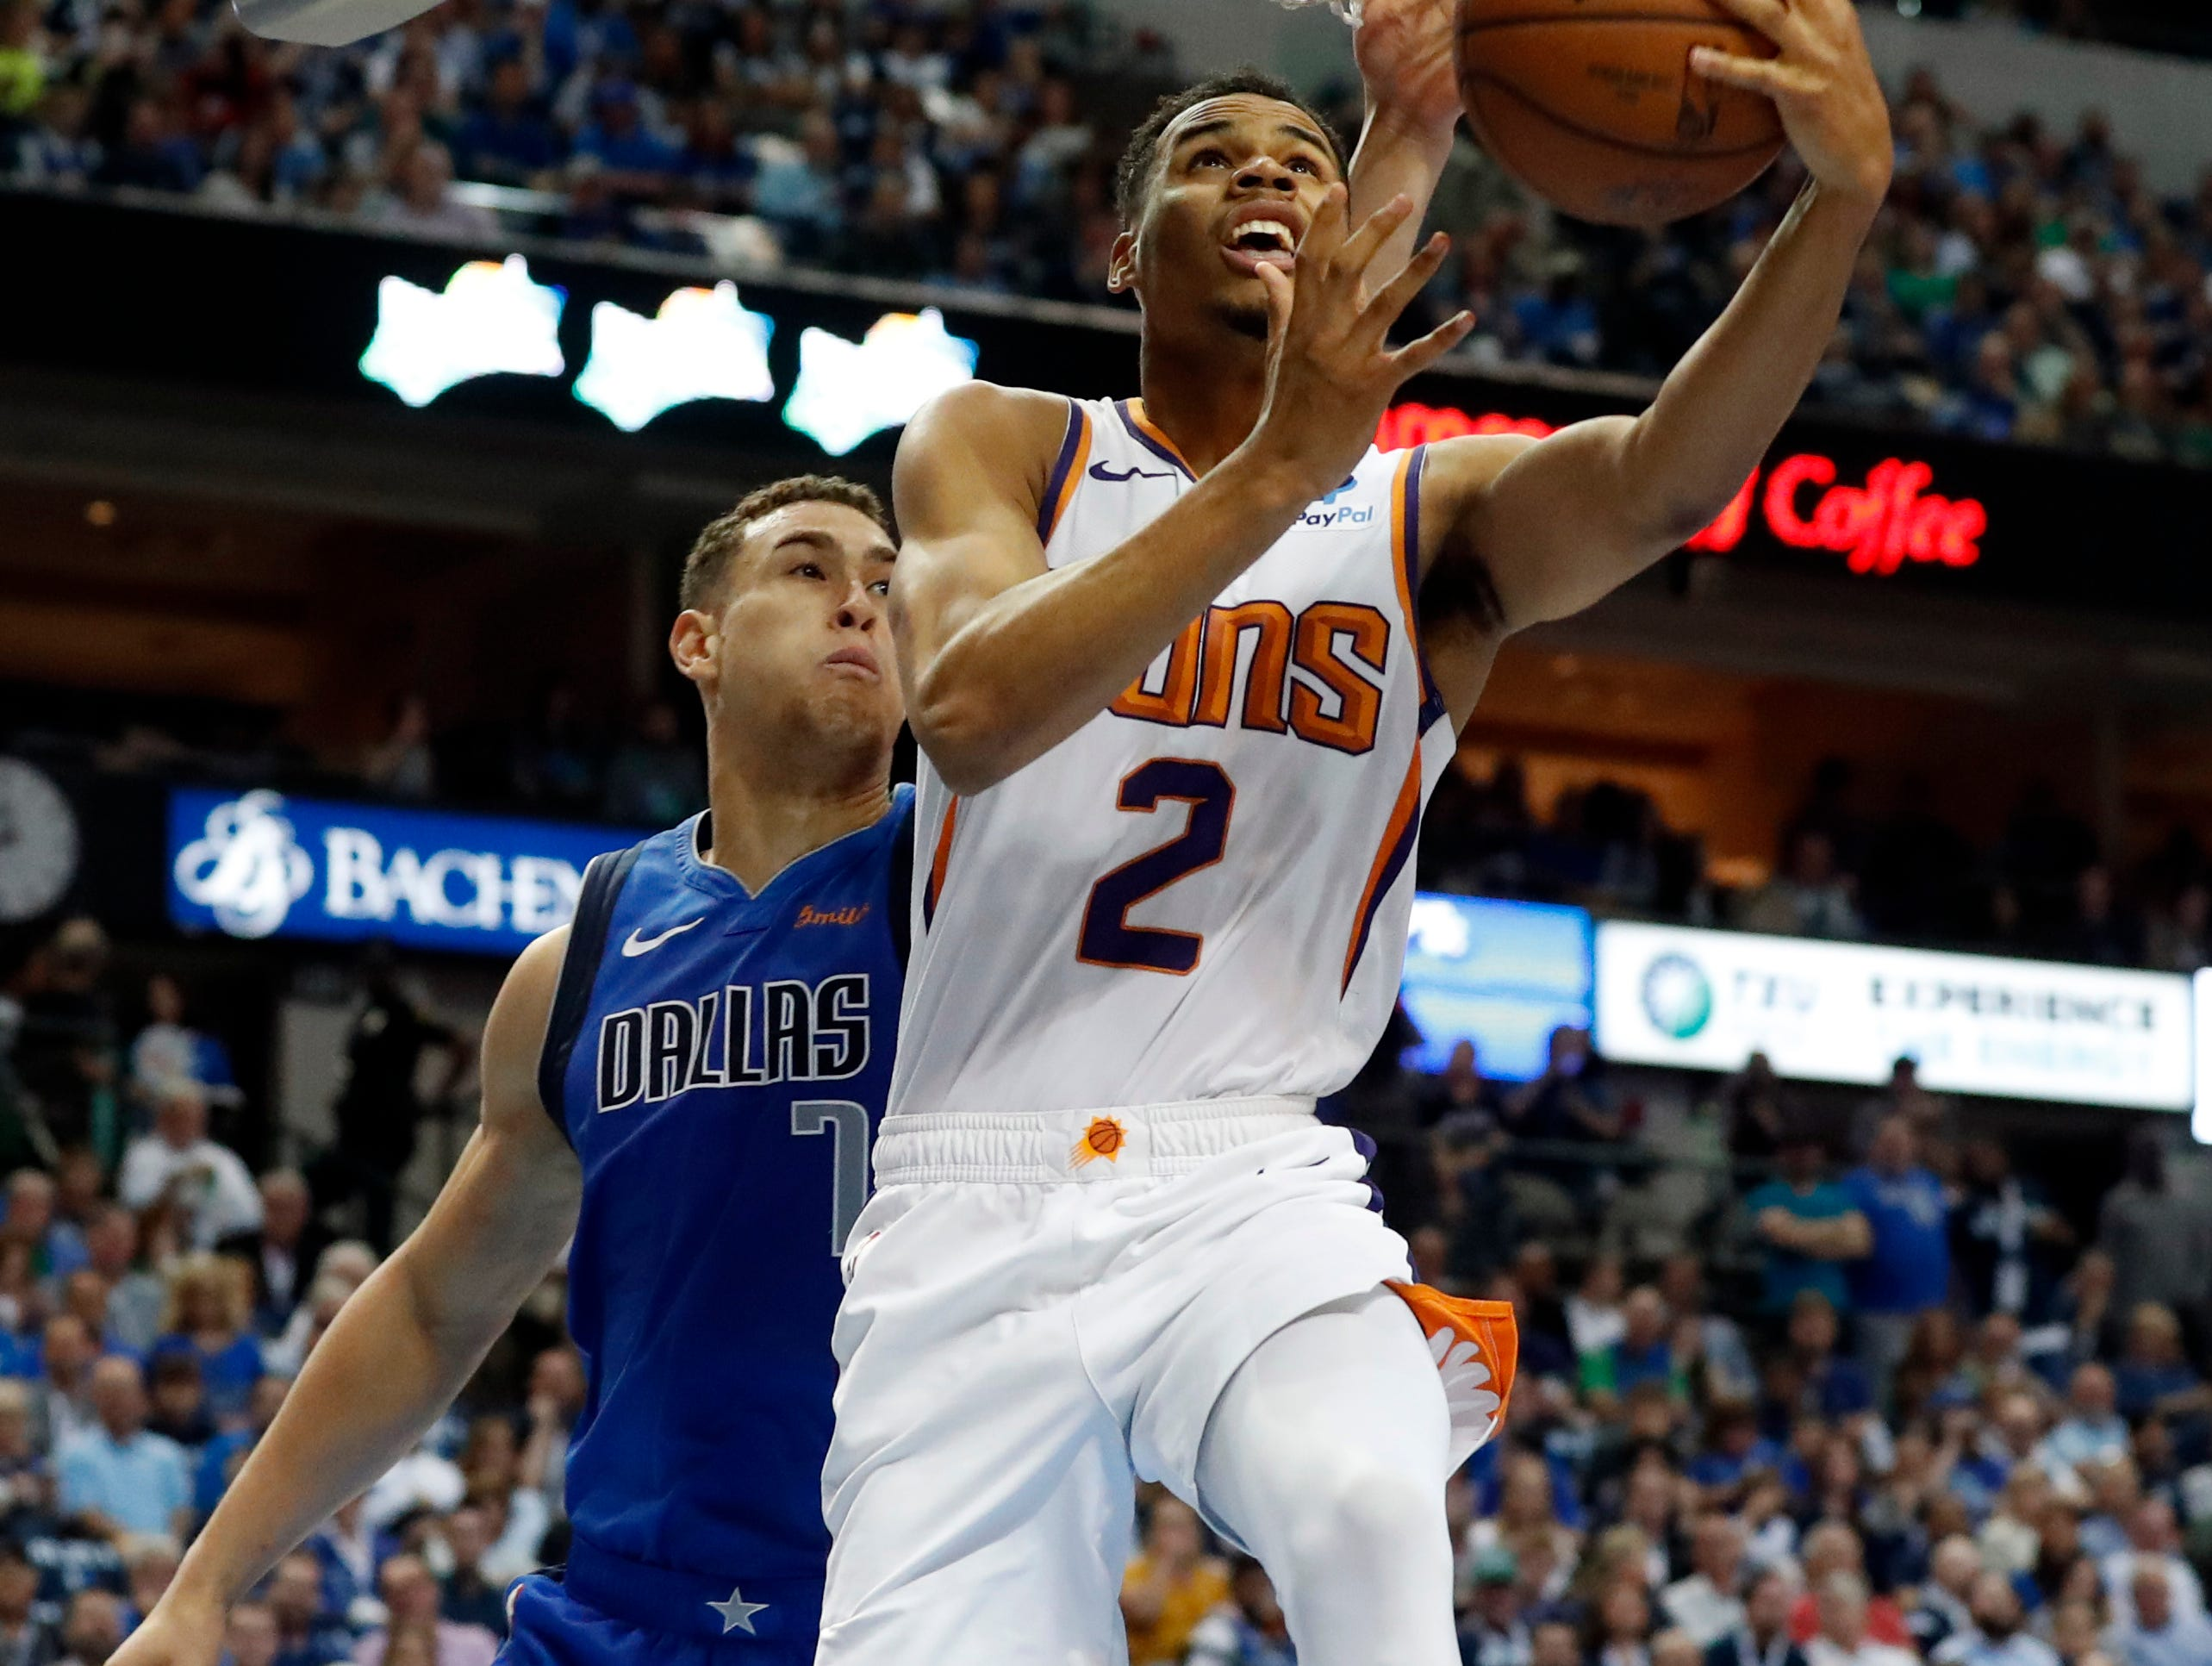 Phoenix Suns guard Elie Okobo (2) gets past Dallas Mavericks forward Dwight Powell (7) for a shot during the first half of an NBA basketball game in Dallas, Tuesday, April 9, 2019. (AP Photo/Tony Gutierrez)